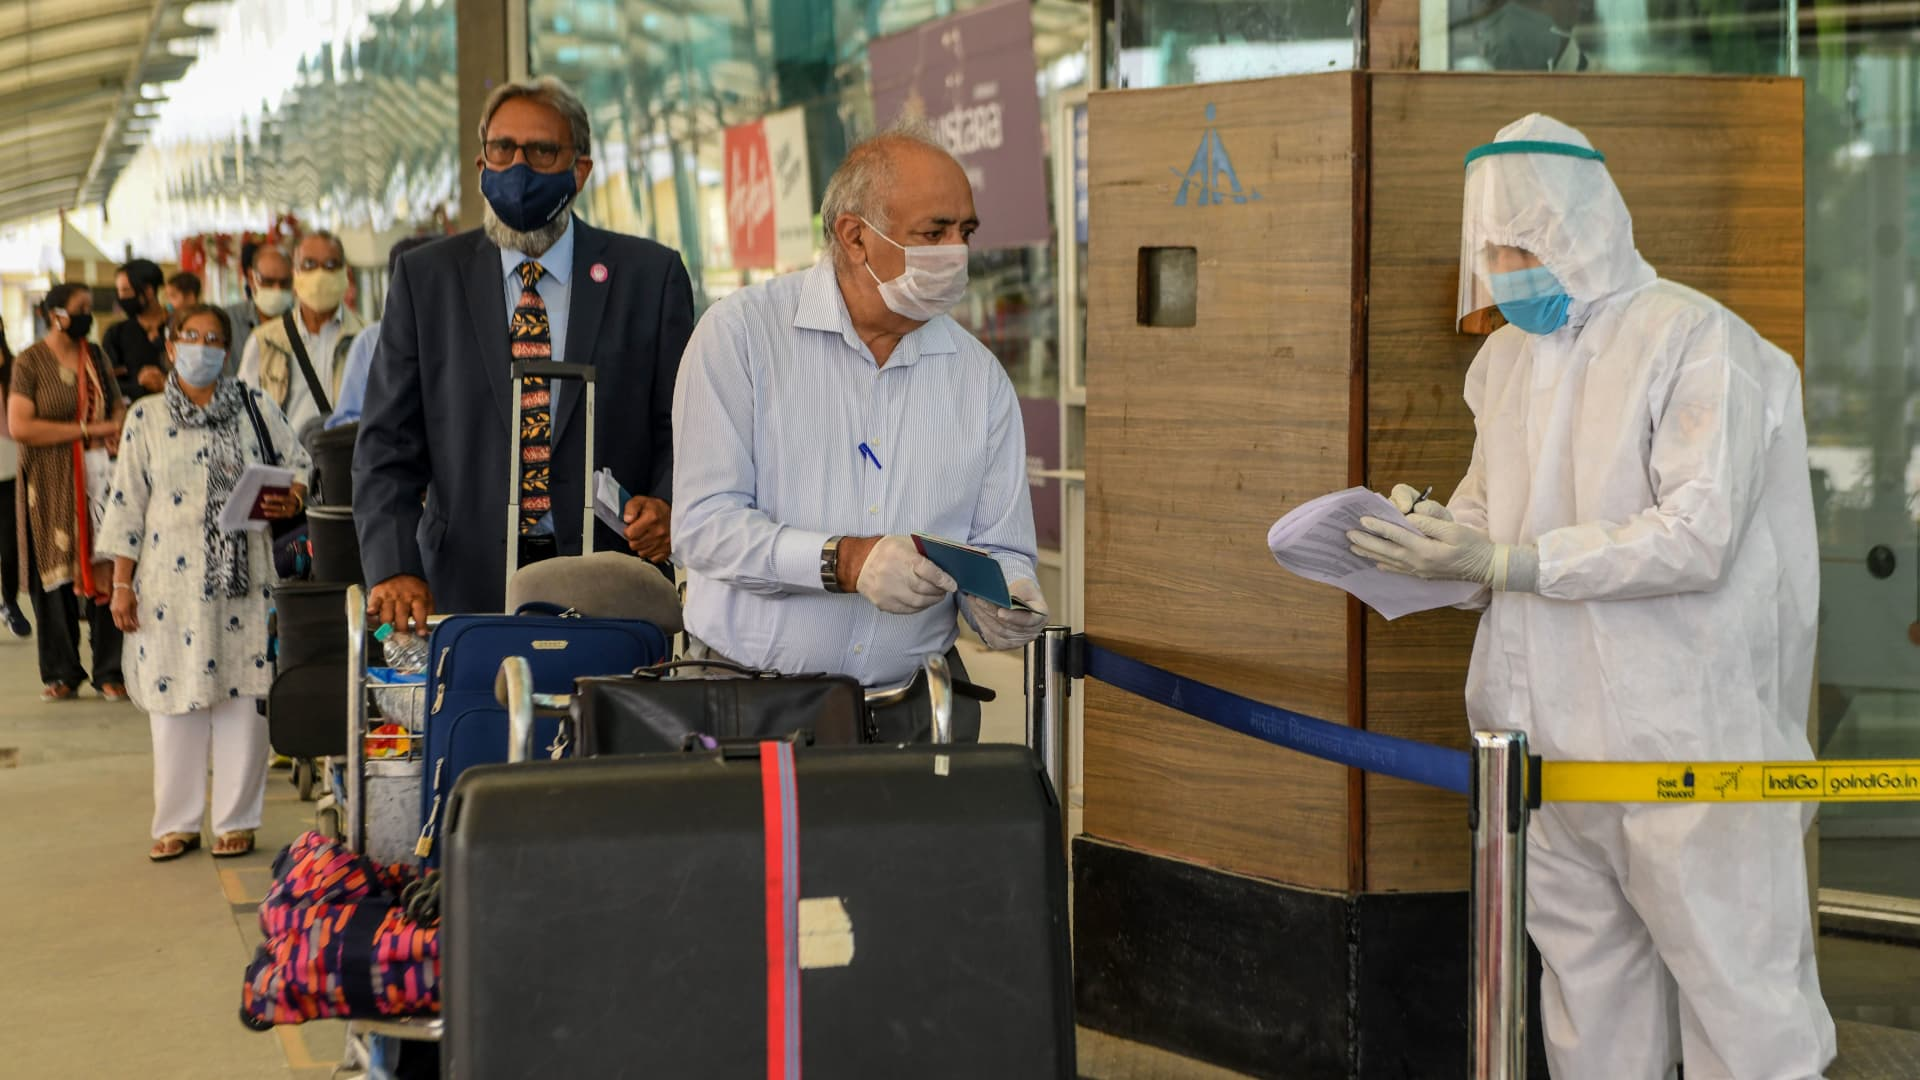 A security personnel wearing protective gear (R) checks the passports of British nationals before check-in for a special flight to London during a government-imposed nationwide lockdown as a preventive measure against the COVID-19 coronavirus, at the Sri Guru Ram Dass Jee International Airport in Amritsar on April 25, 2020.